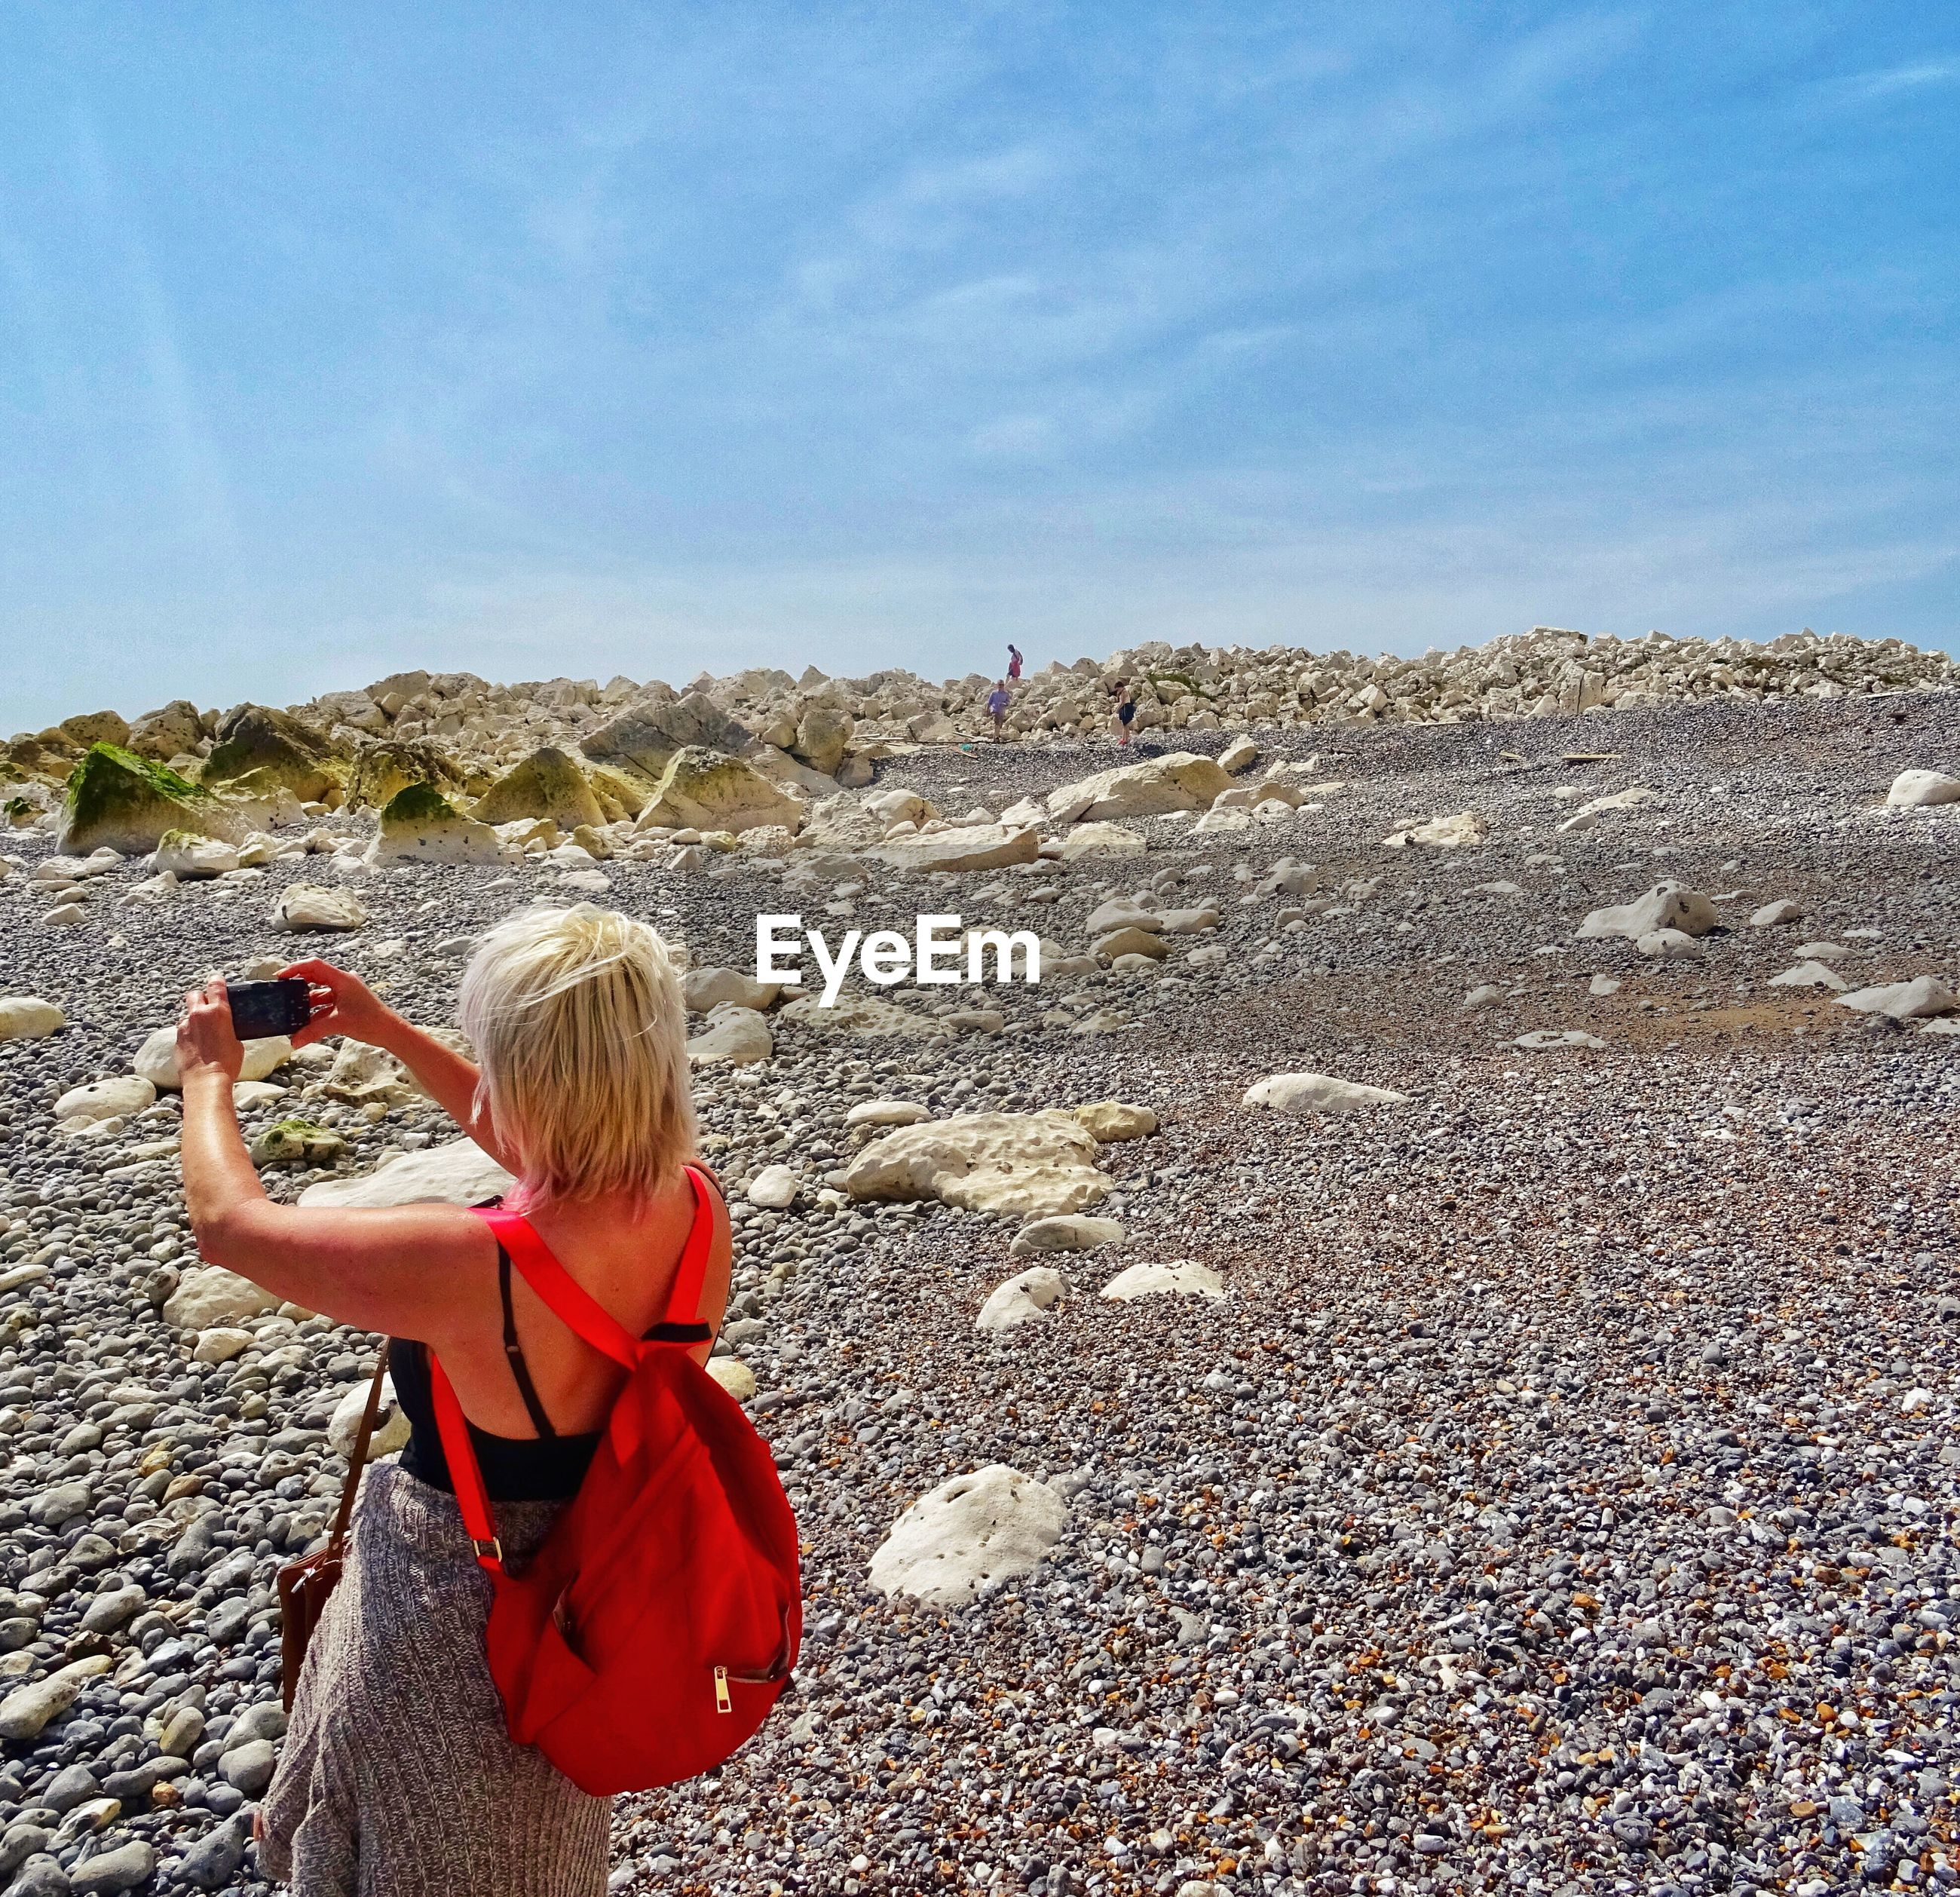 Woman photographing through mobile phone while standing on landscape